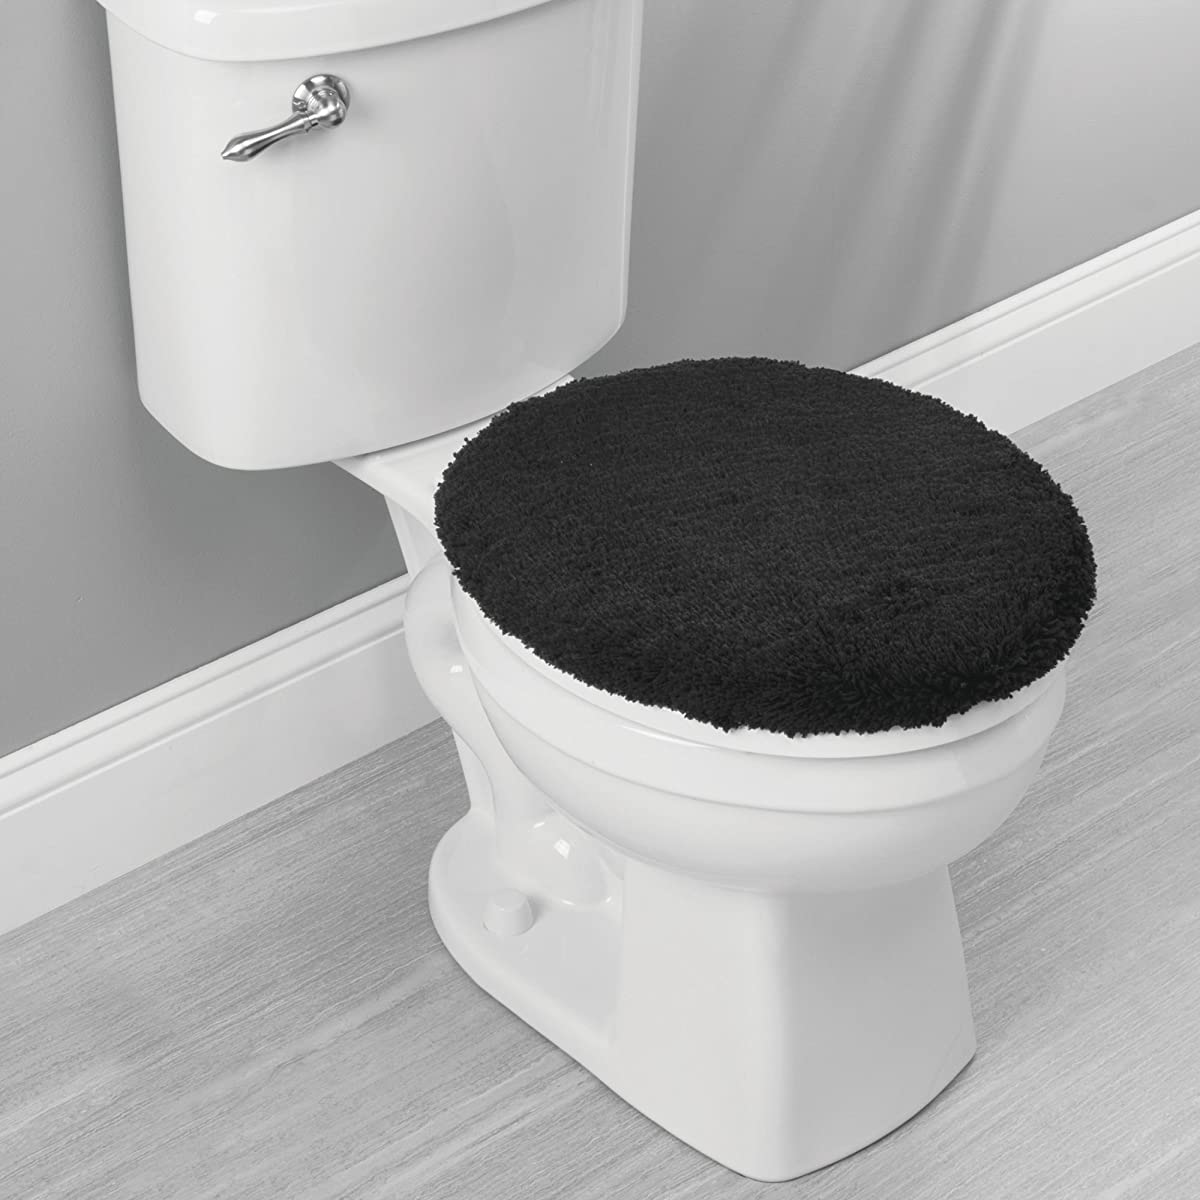 mDesign Contour, Toilet Seat Cover, and Bathroom Mat Combo Pack - Set of 5, Black